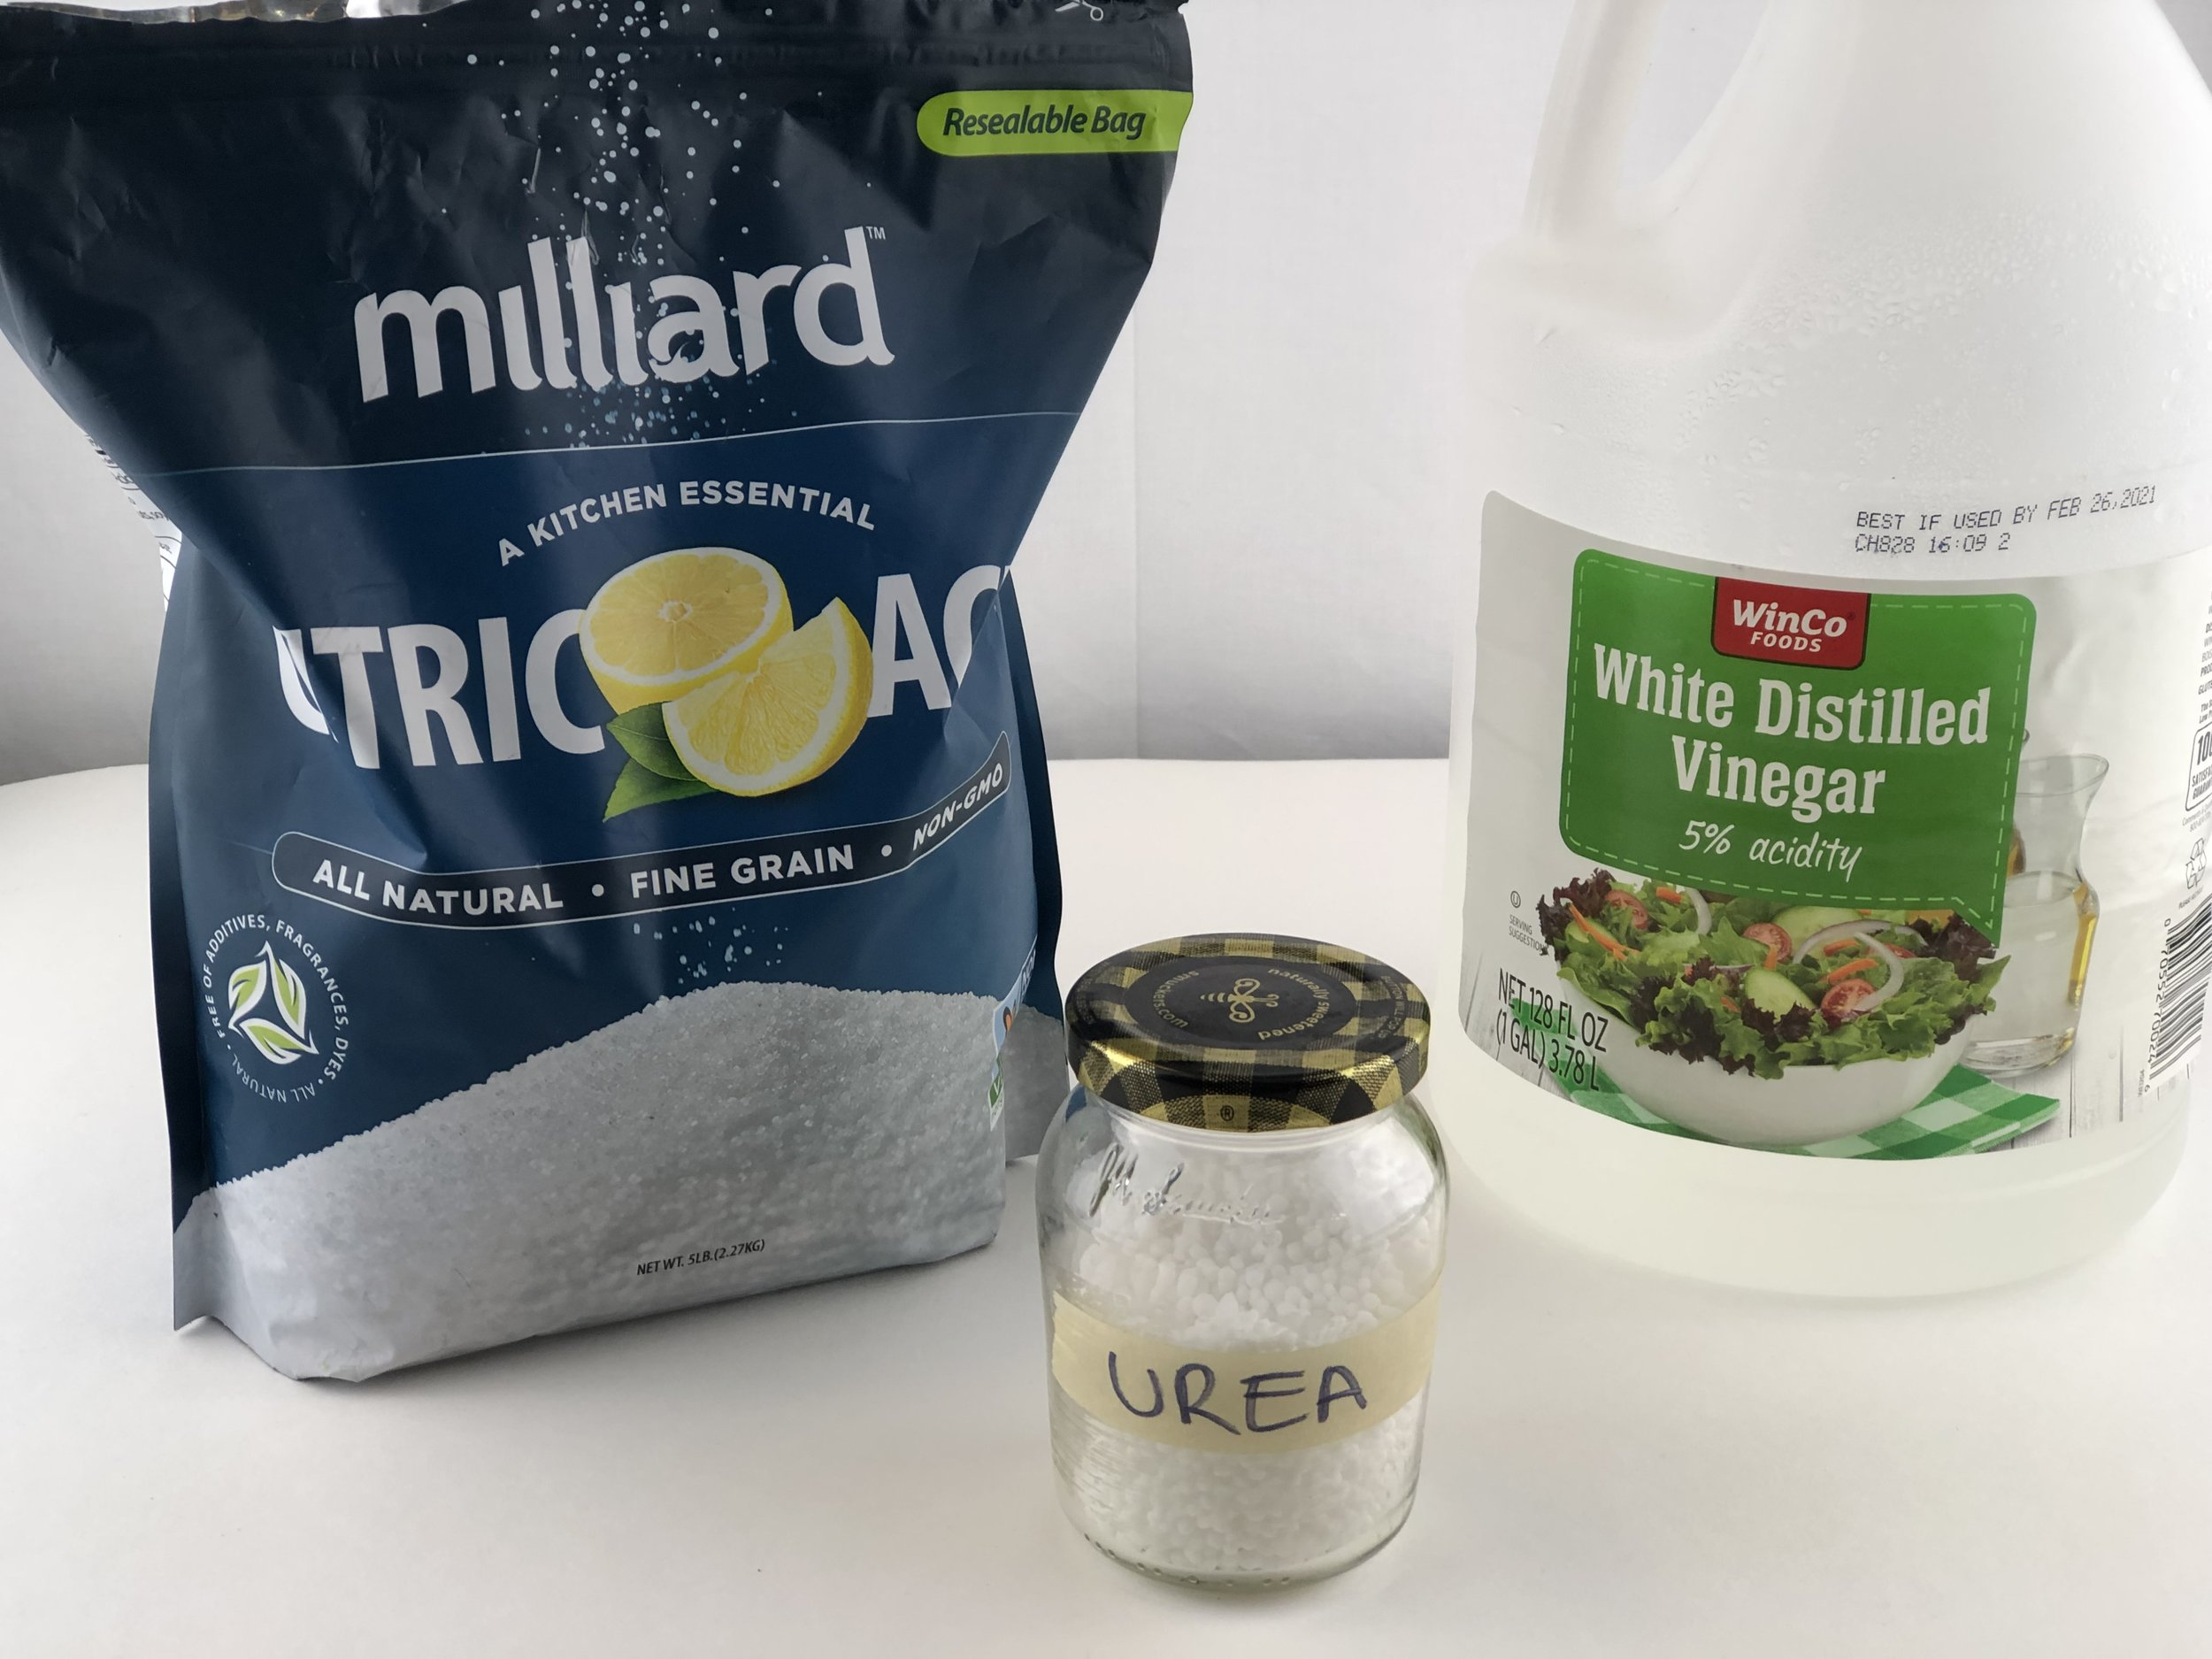 Citric Acid, Vinegar, and Urea - all chemicals needed for yarn dyeing techniques